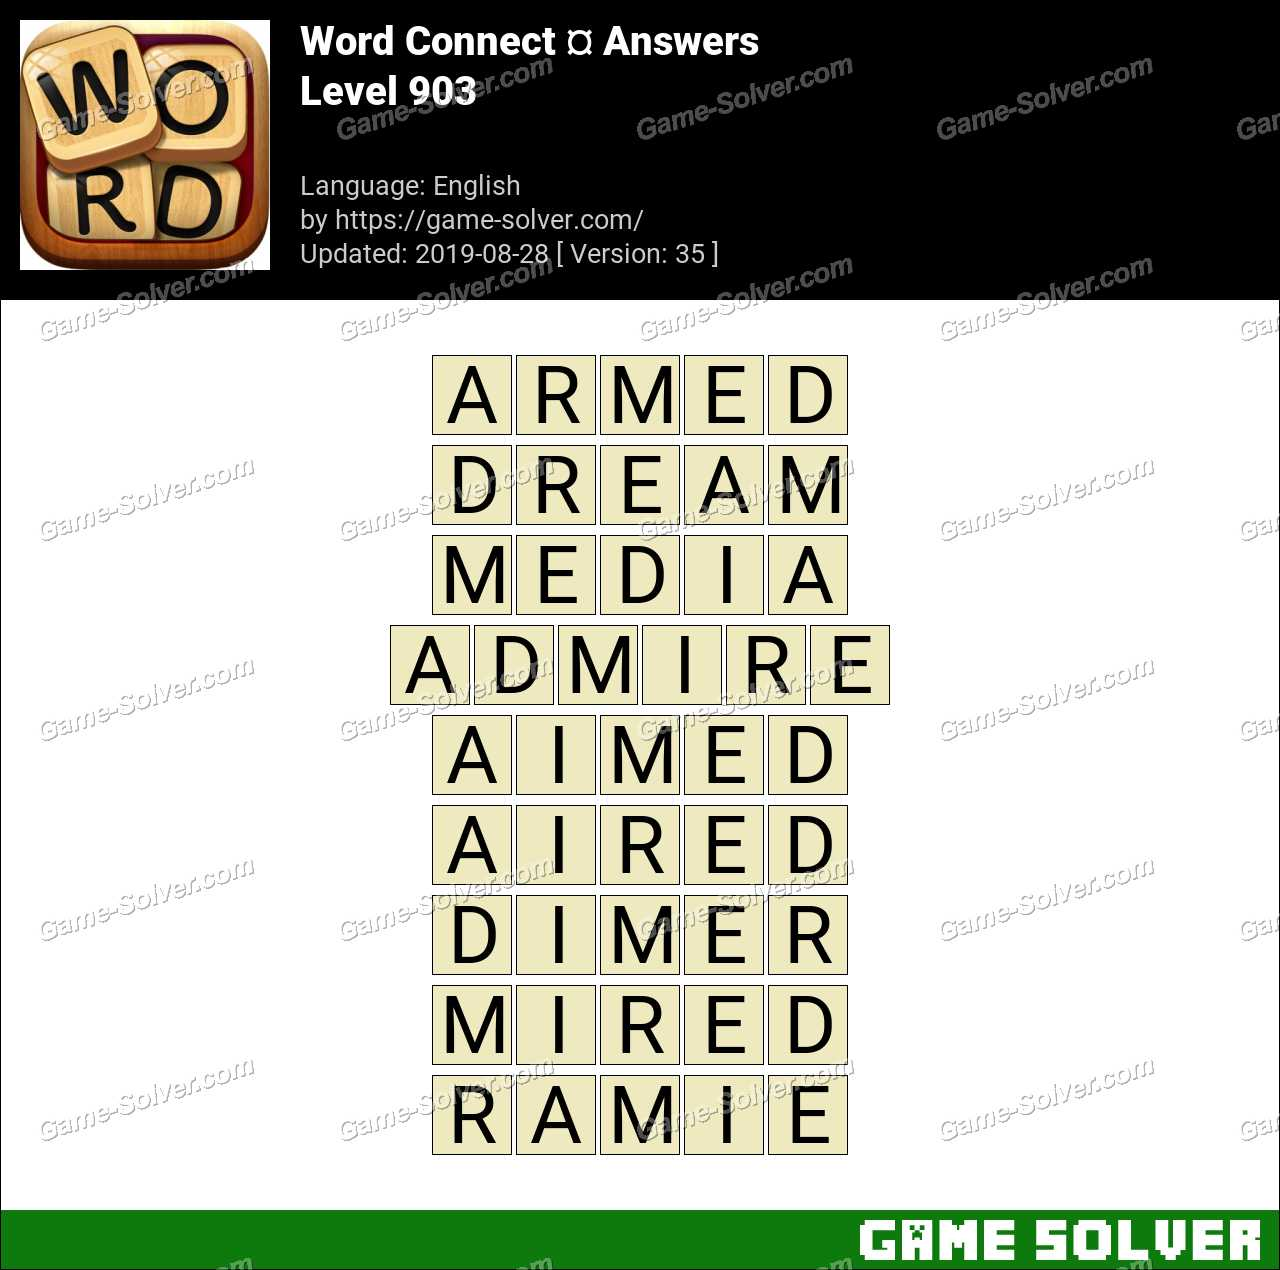 Word Connect Level 903 Answers